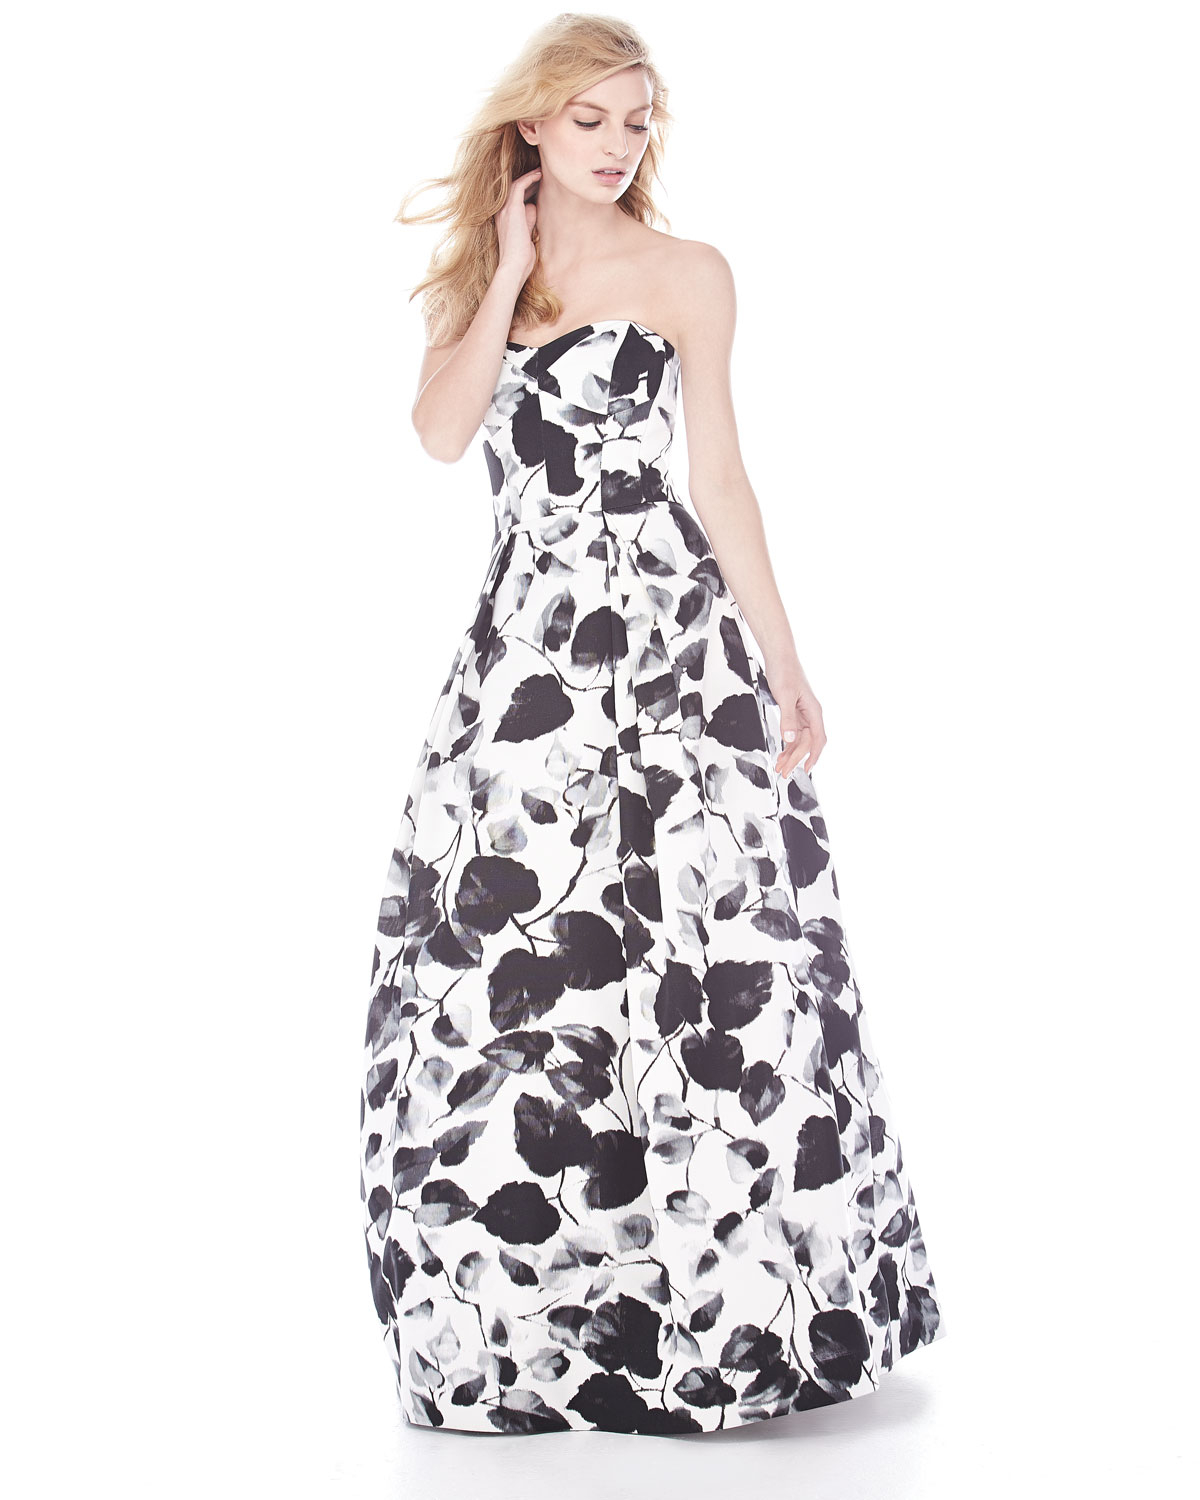 Milly Black and White Dresses